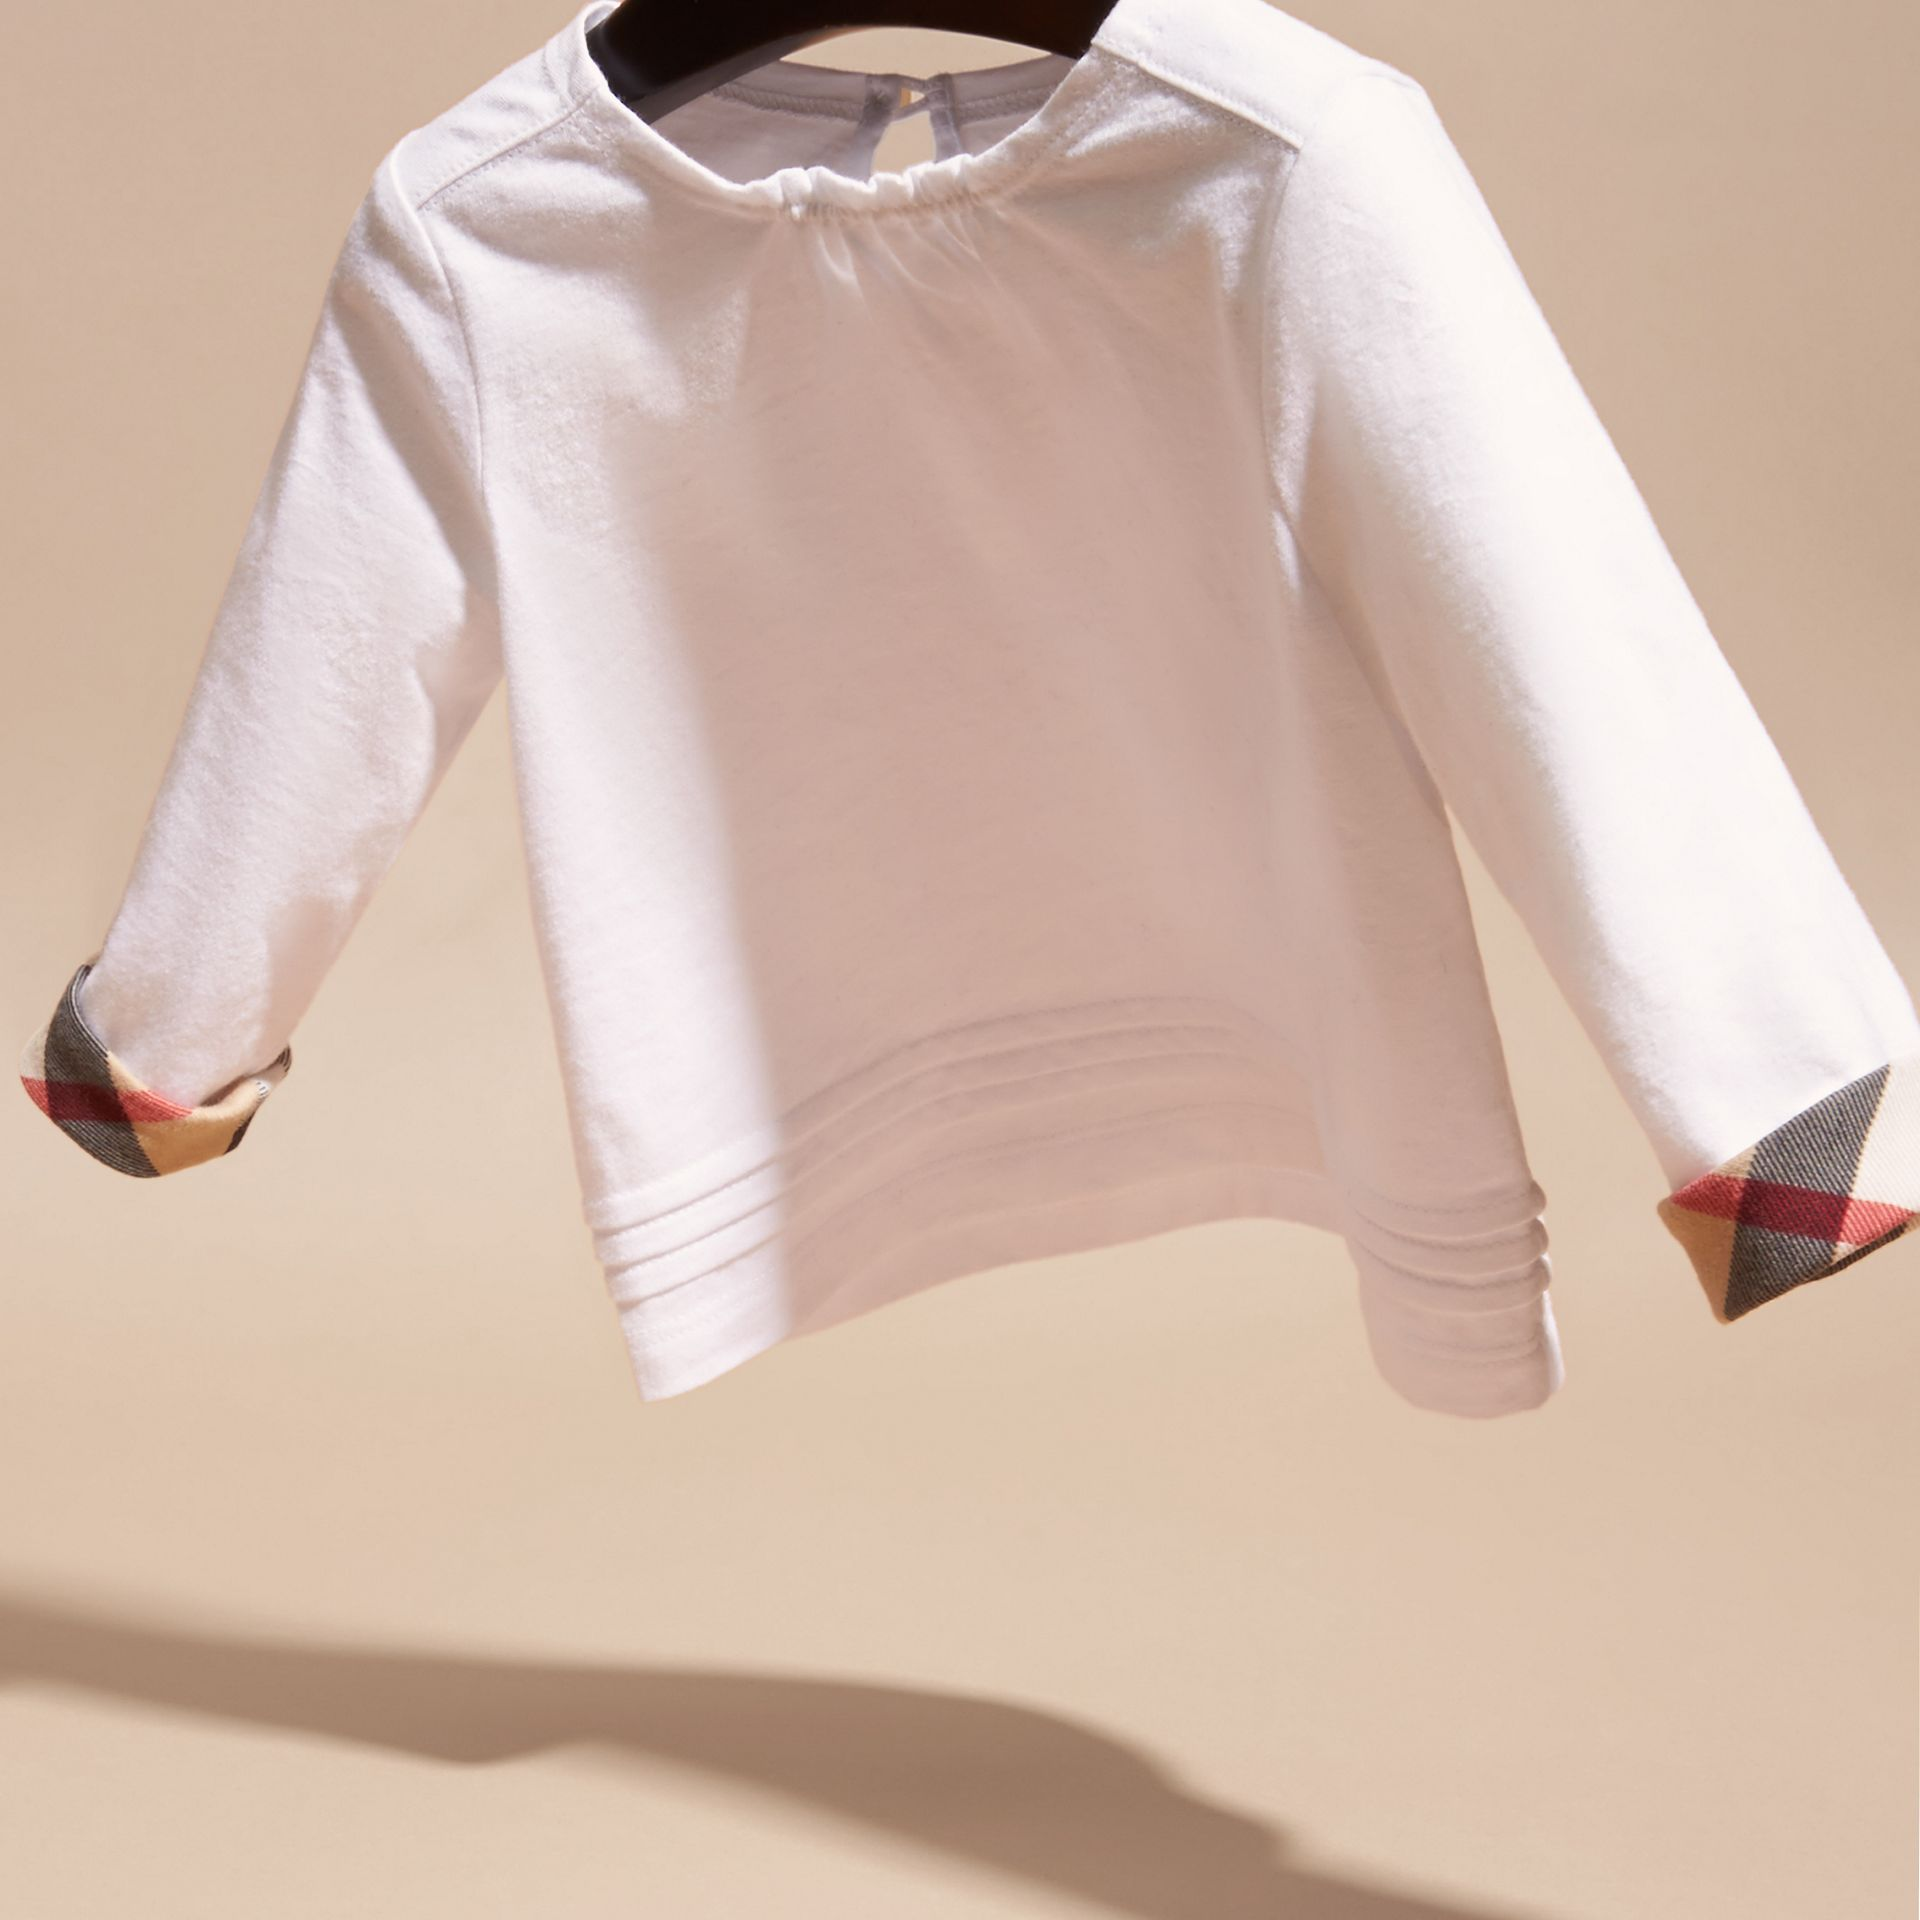 Blanc T-shirt en coton à manches longues avec ornements check - photo de la galerie 3